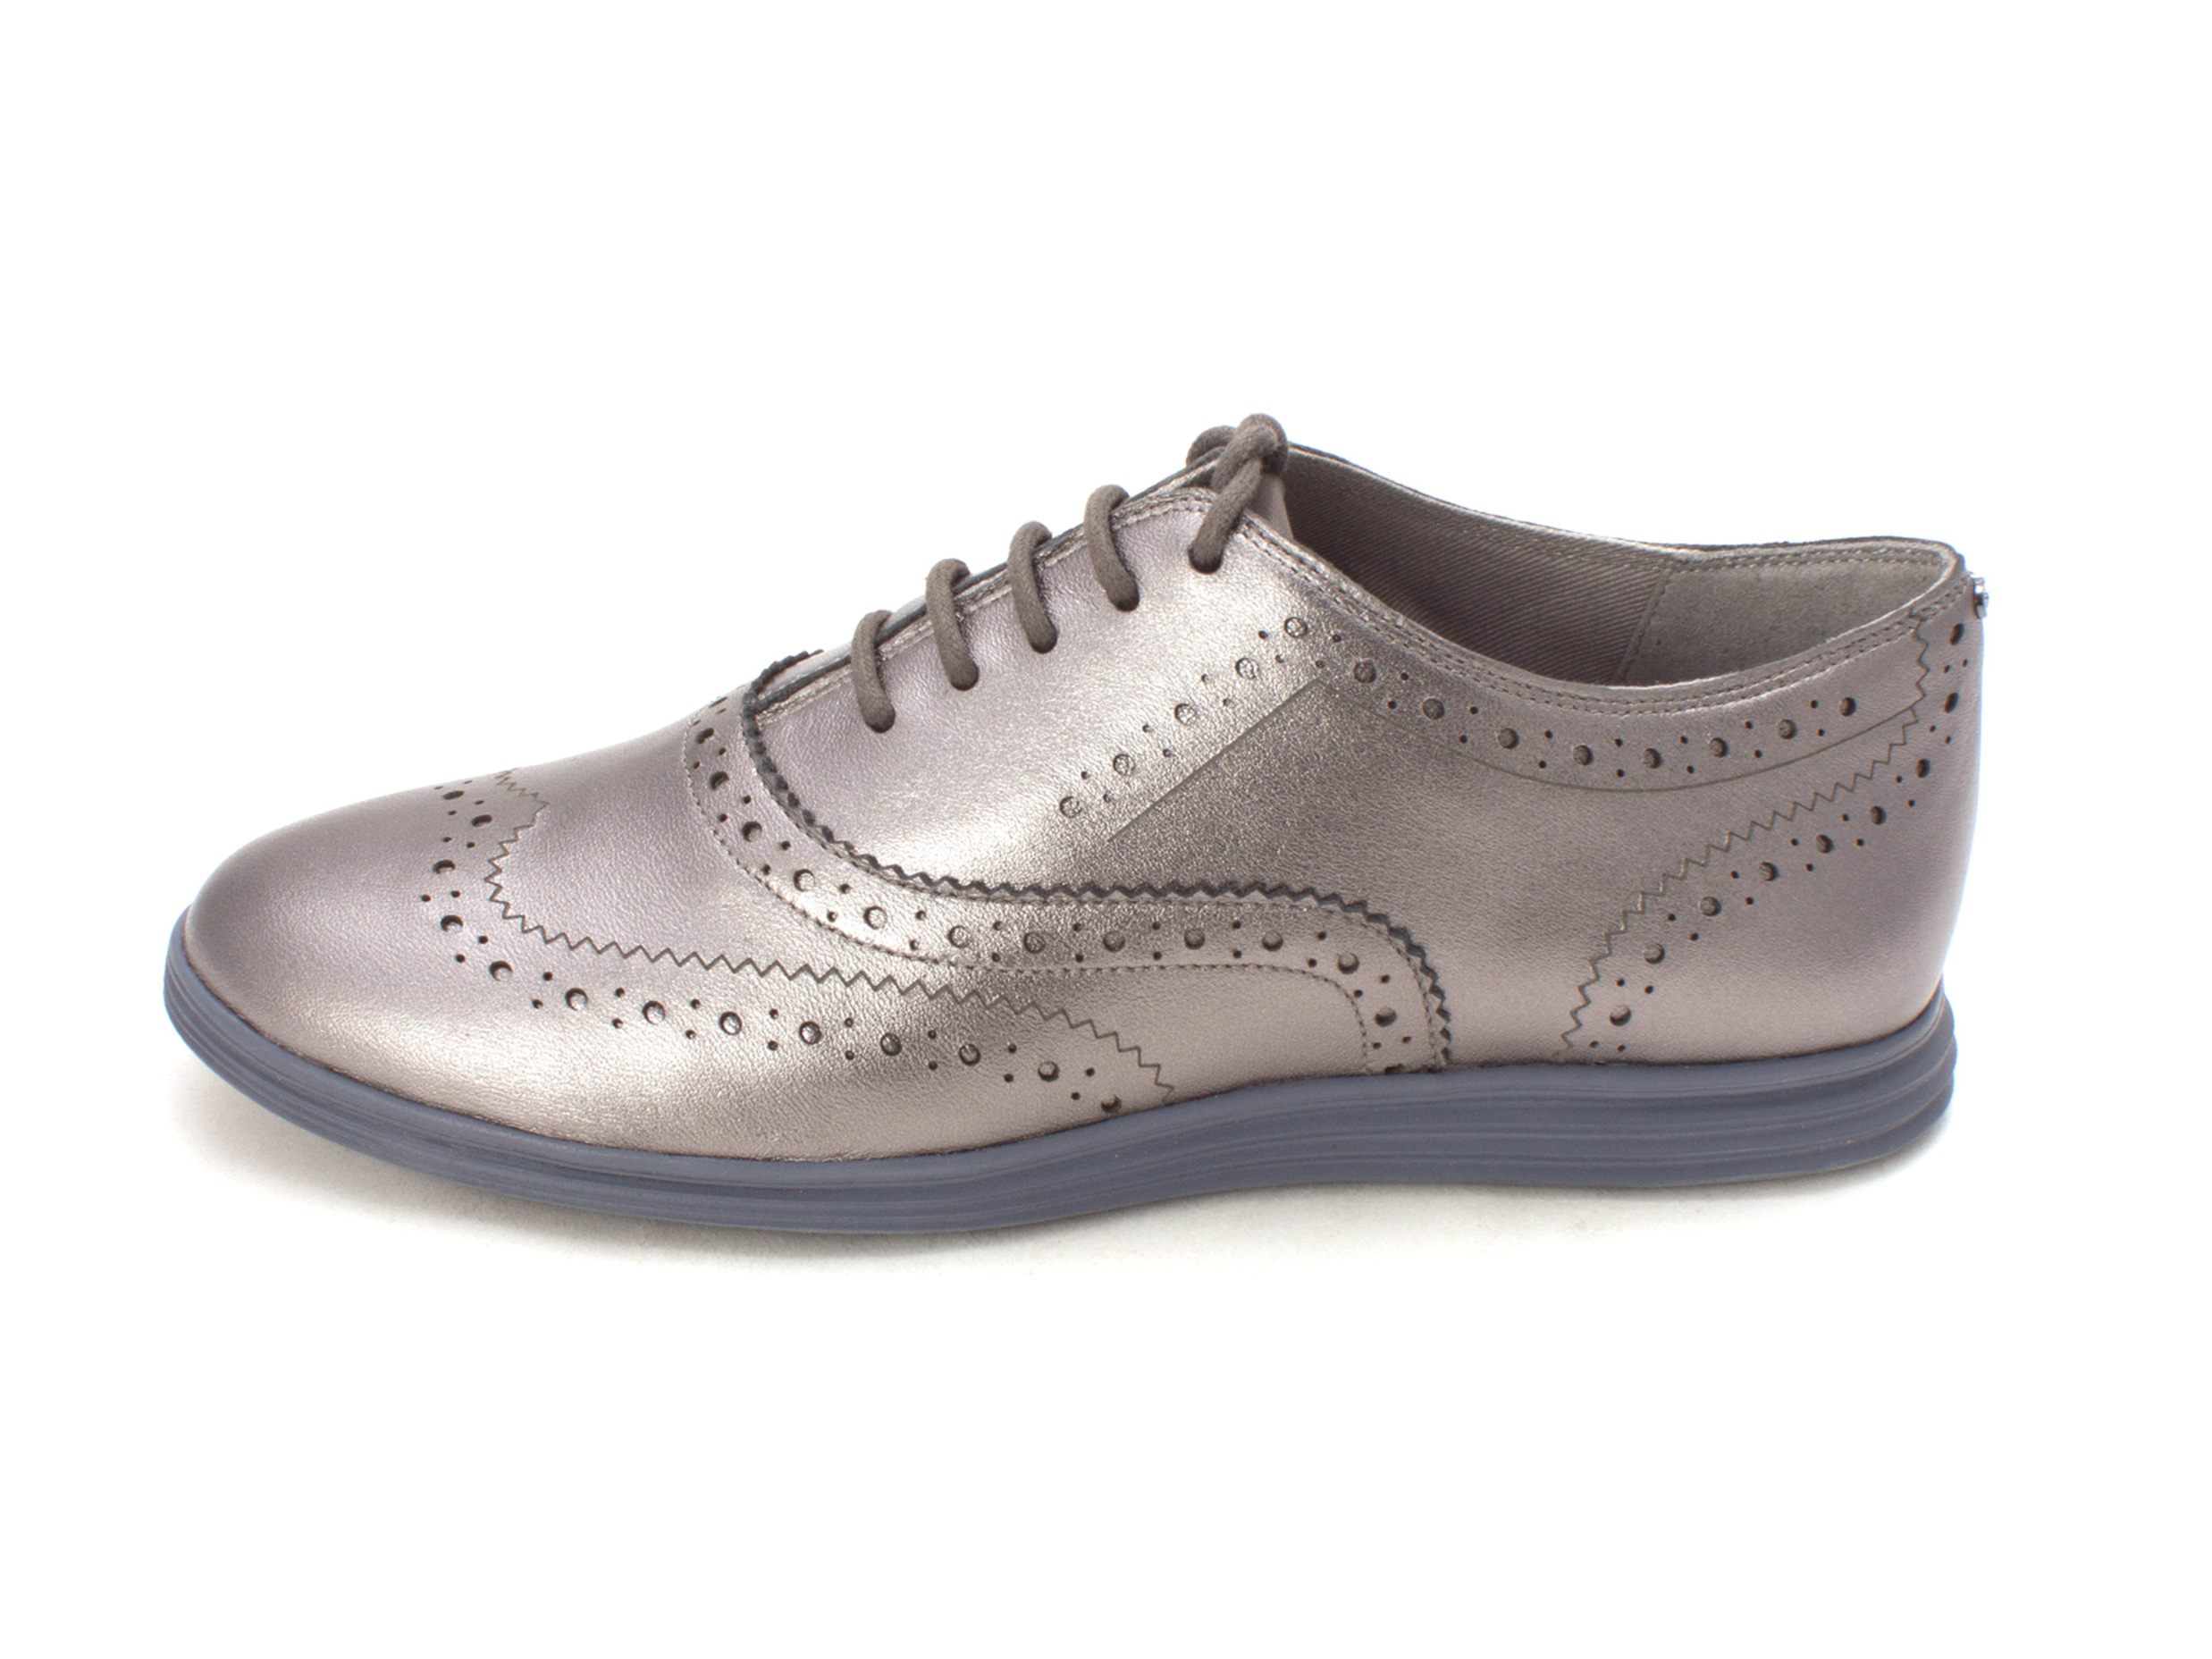 Cole Haan Womens 15A4213 Low Top Lace Up Fashion Sneakers, Dark Silver, Size 6.0